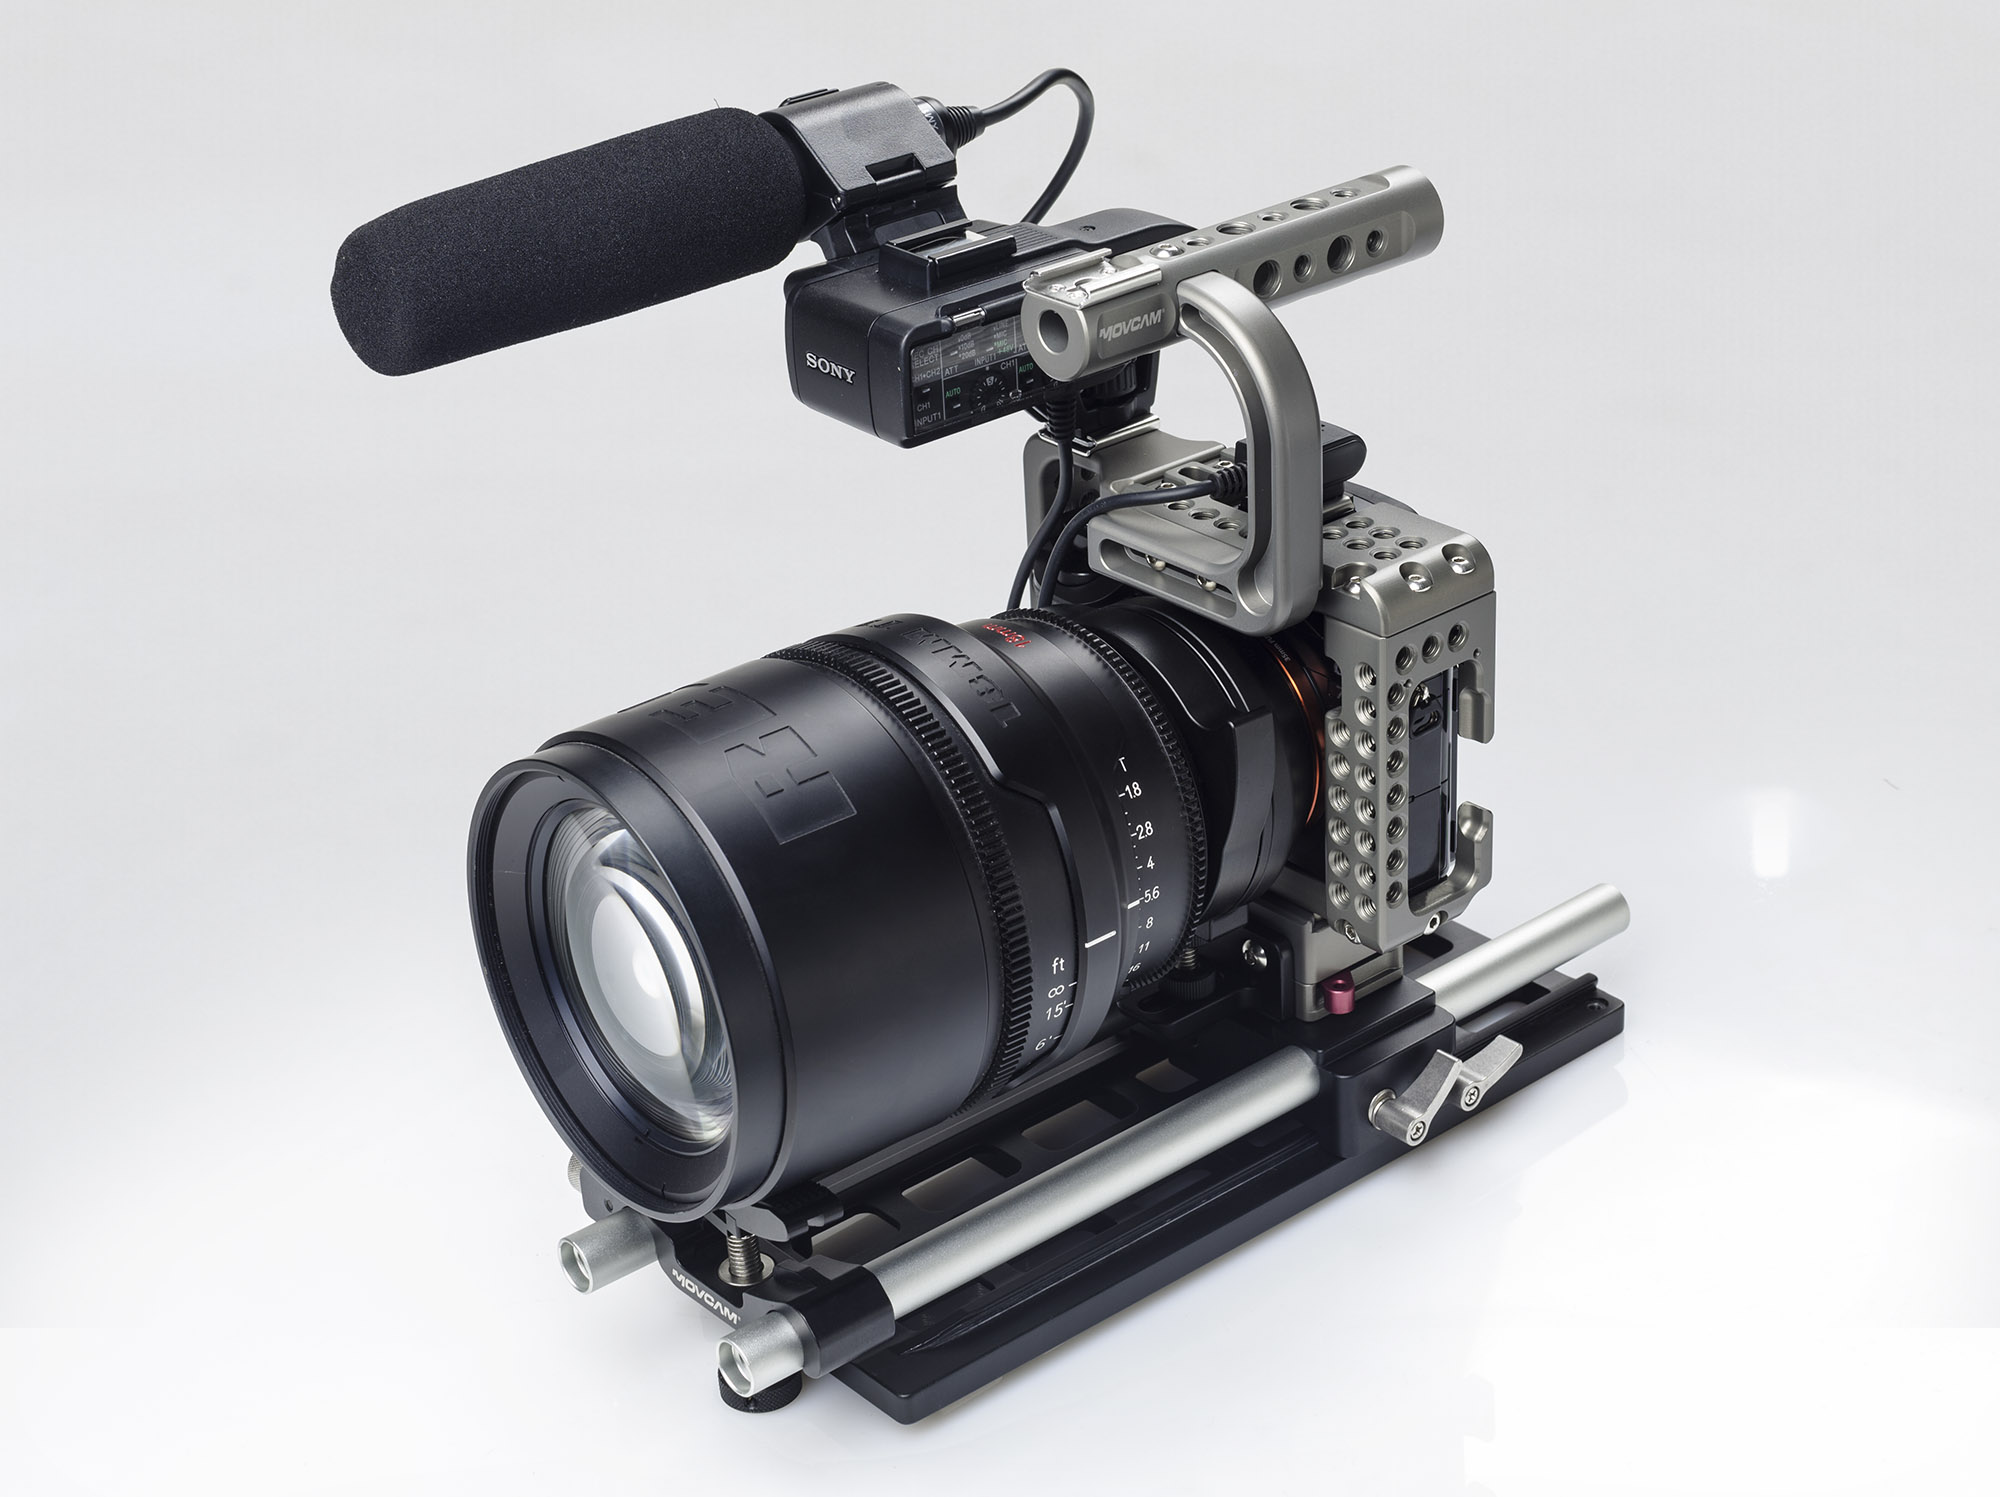 sony a7s cage 9555 - Newsshooter